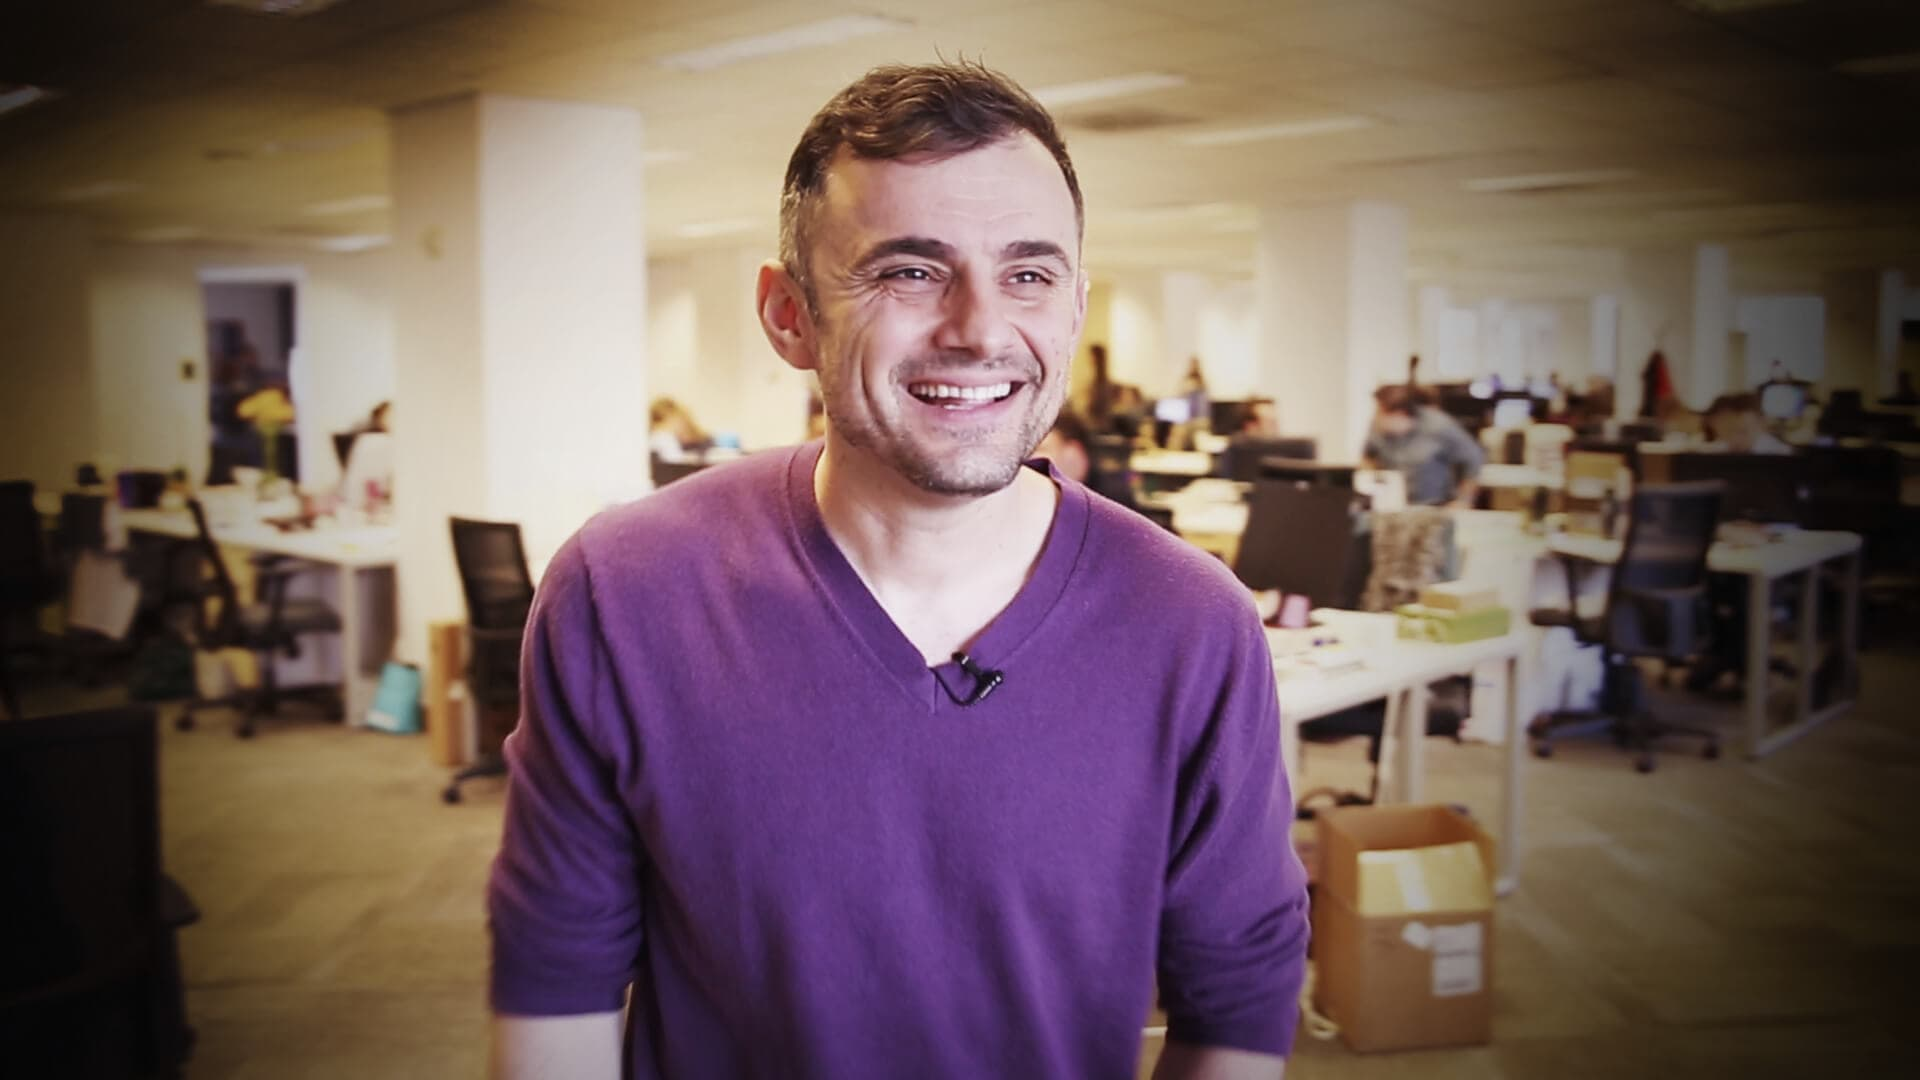 #AskGaryVee Episode 98